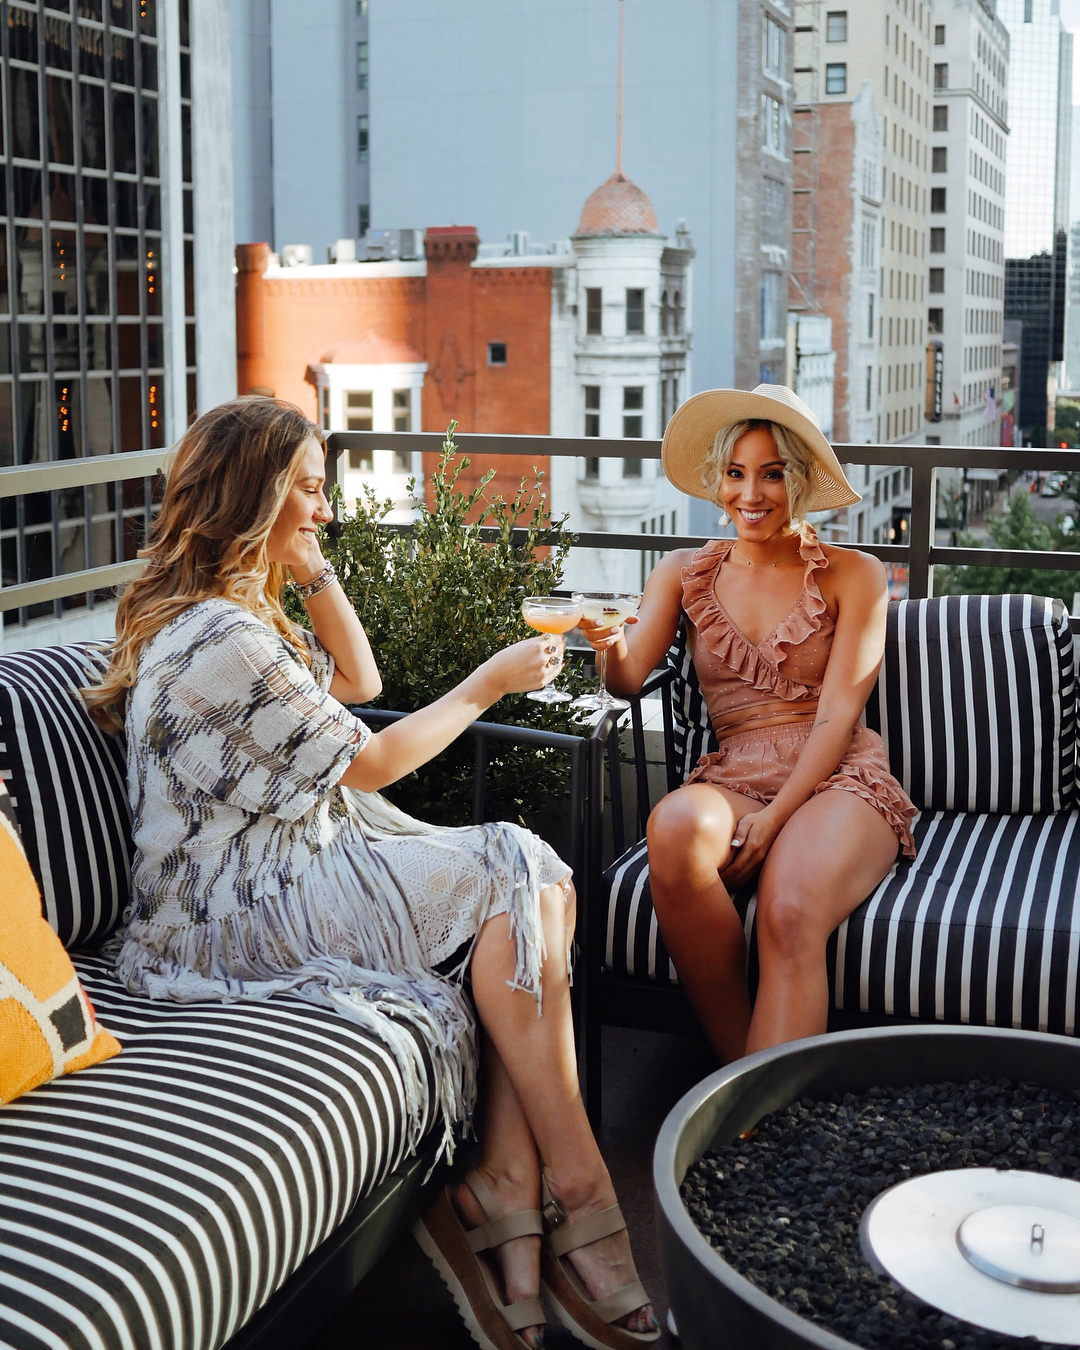 bachelorette cities nashville women one rooftop with drinks